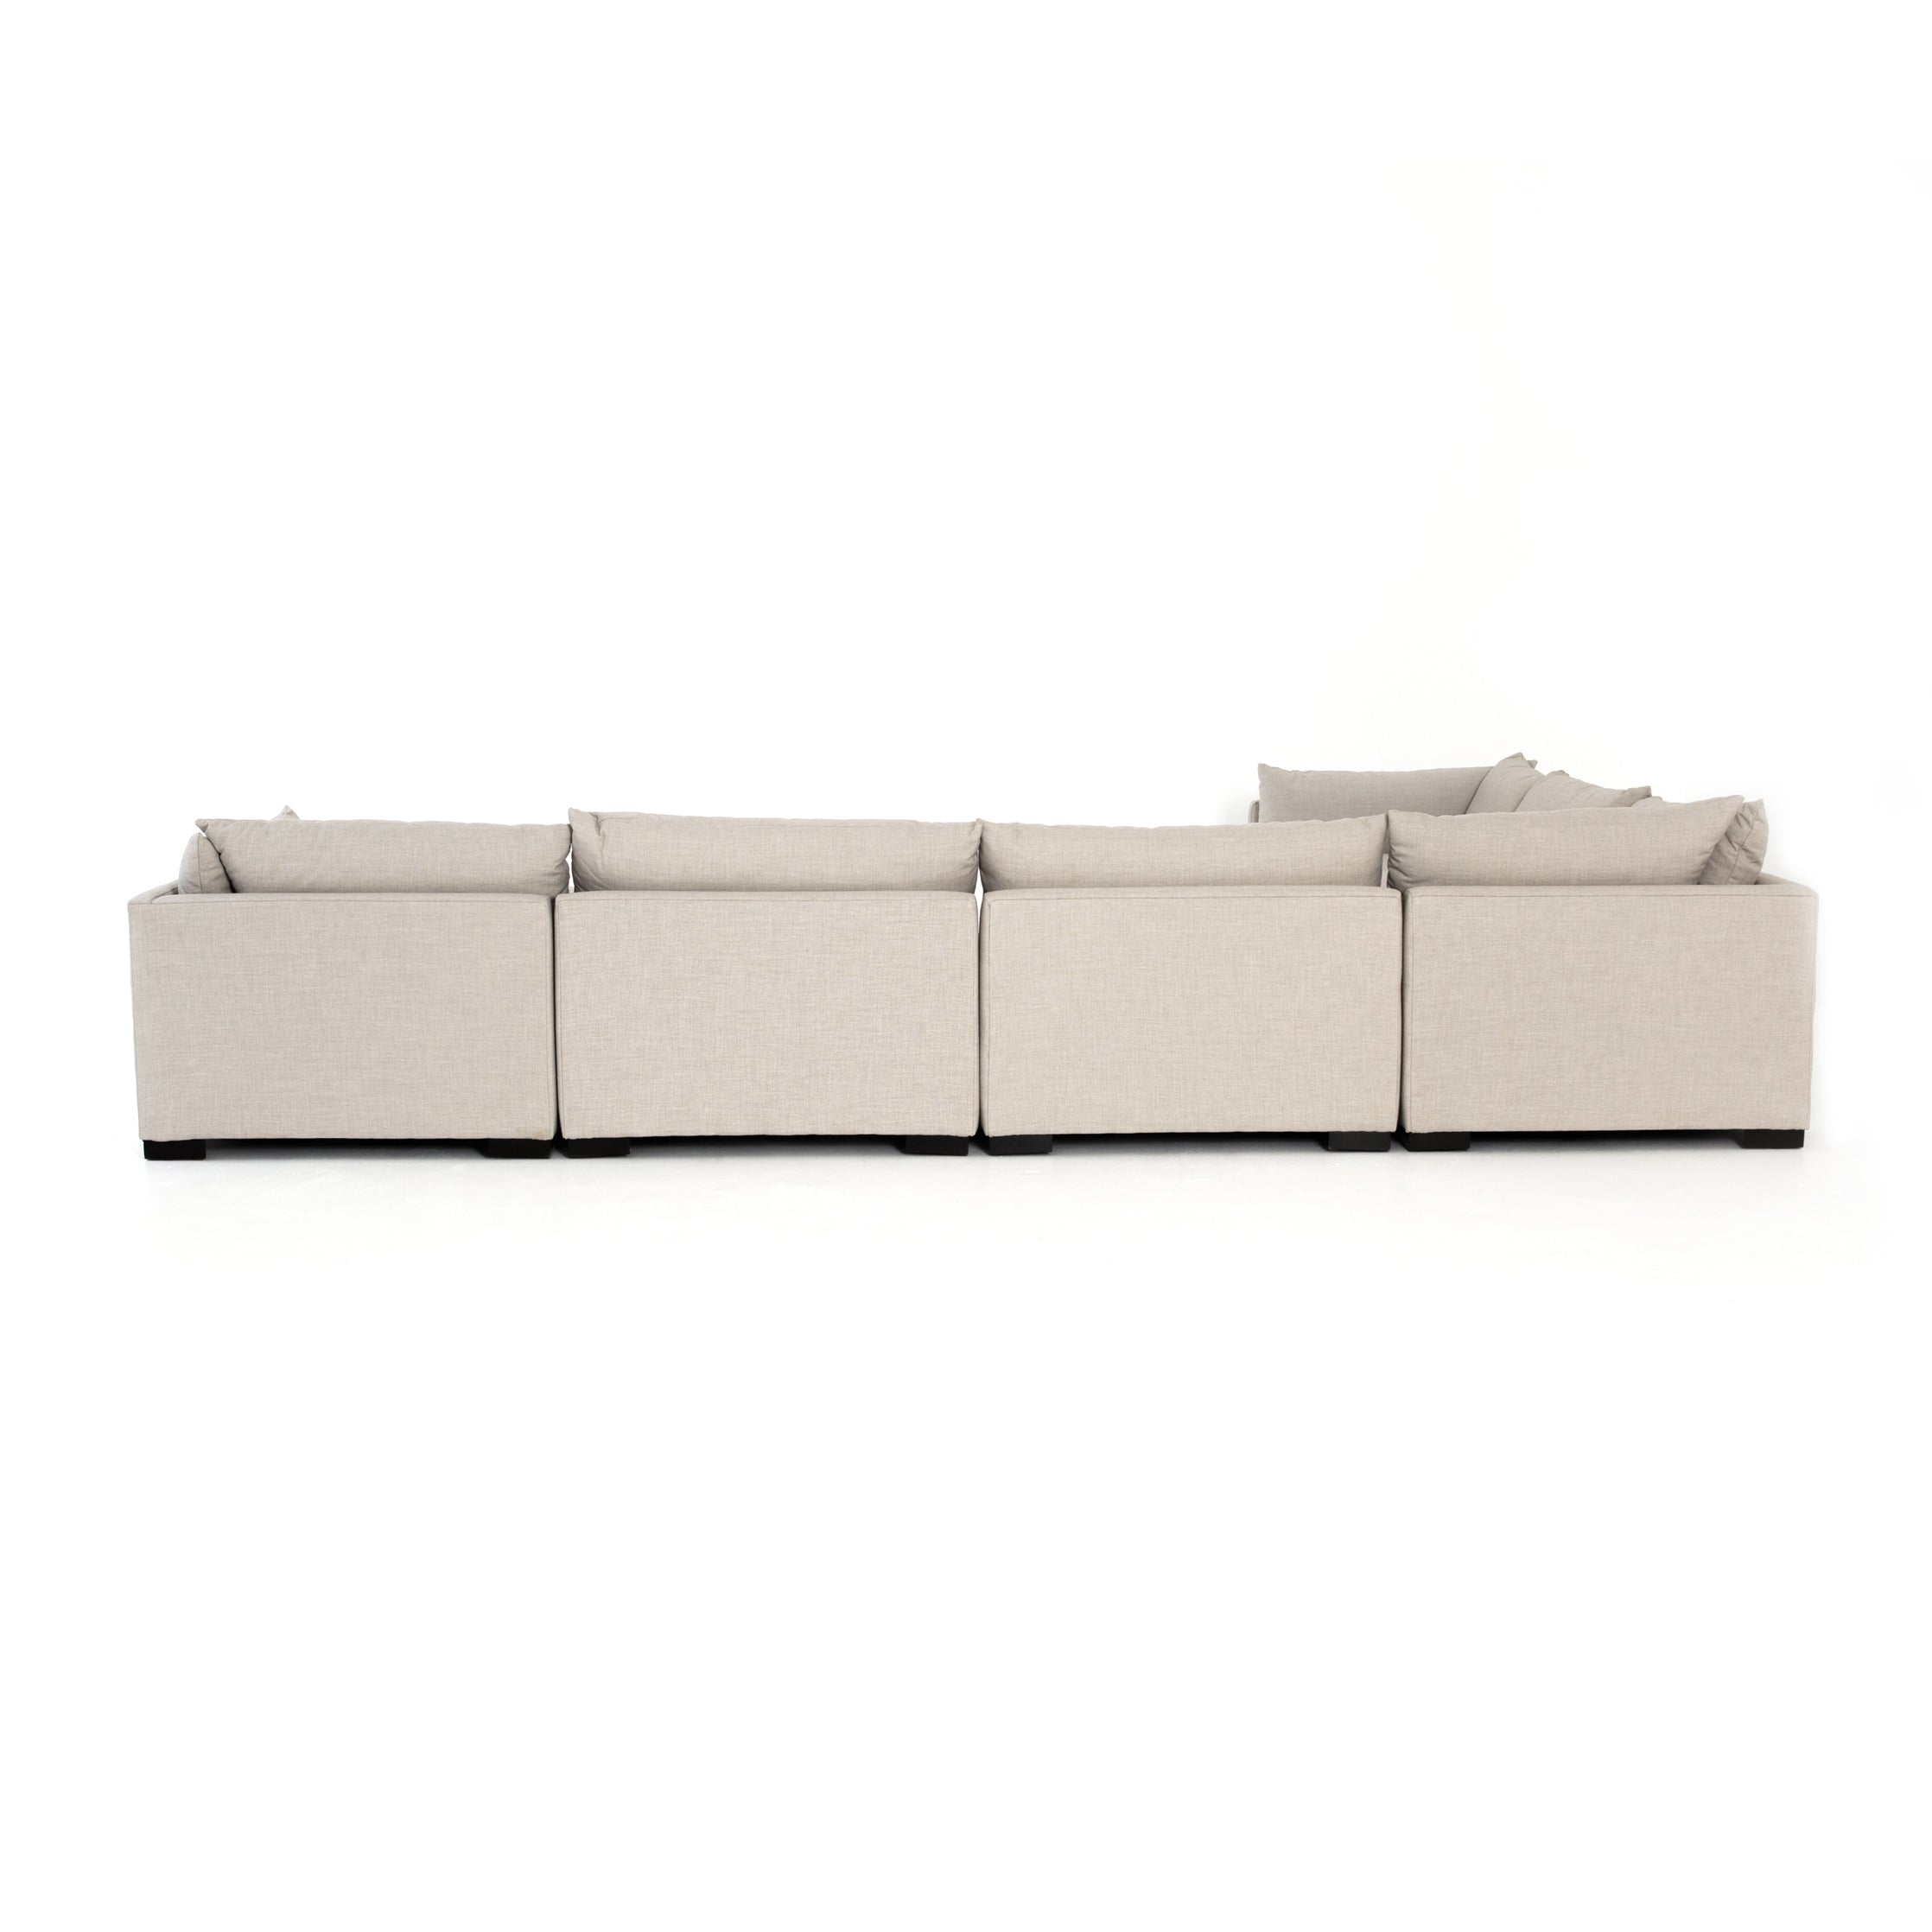 Westwood 6-Pc Sectional-Bennett Moon